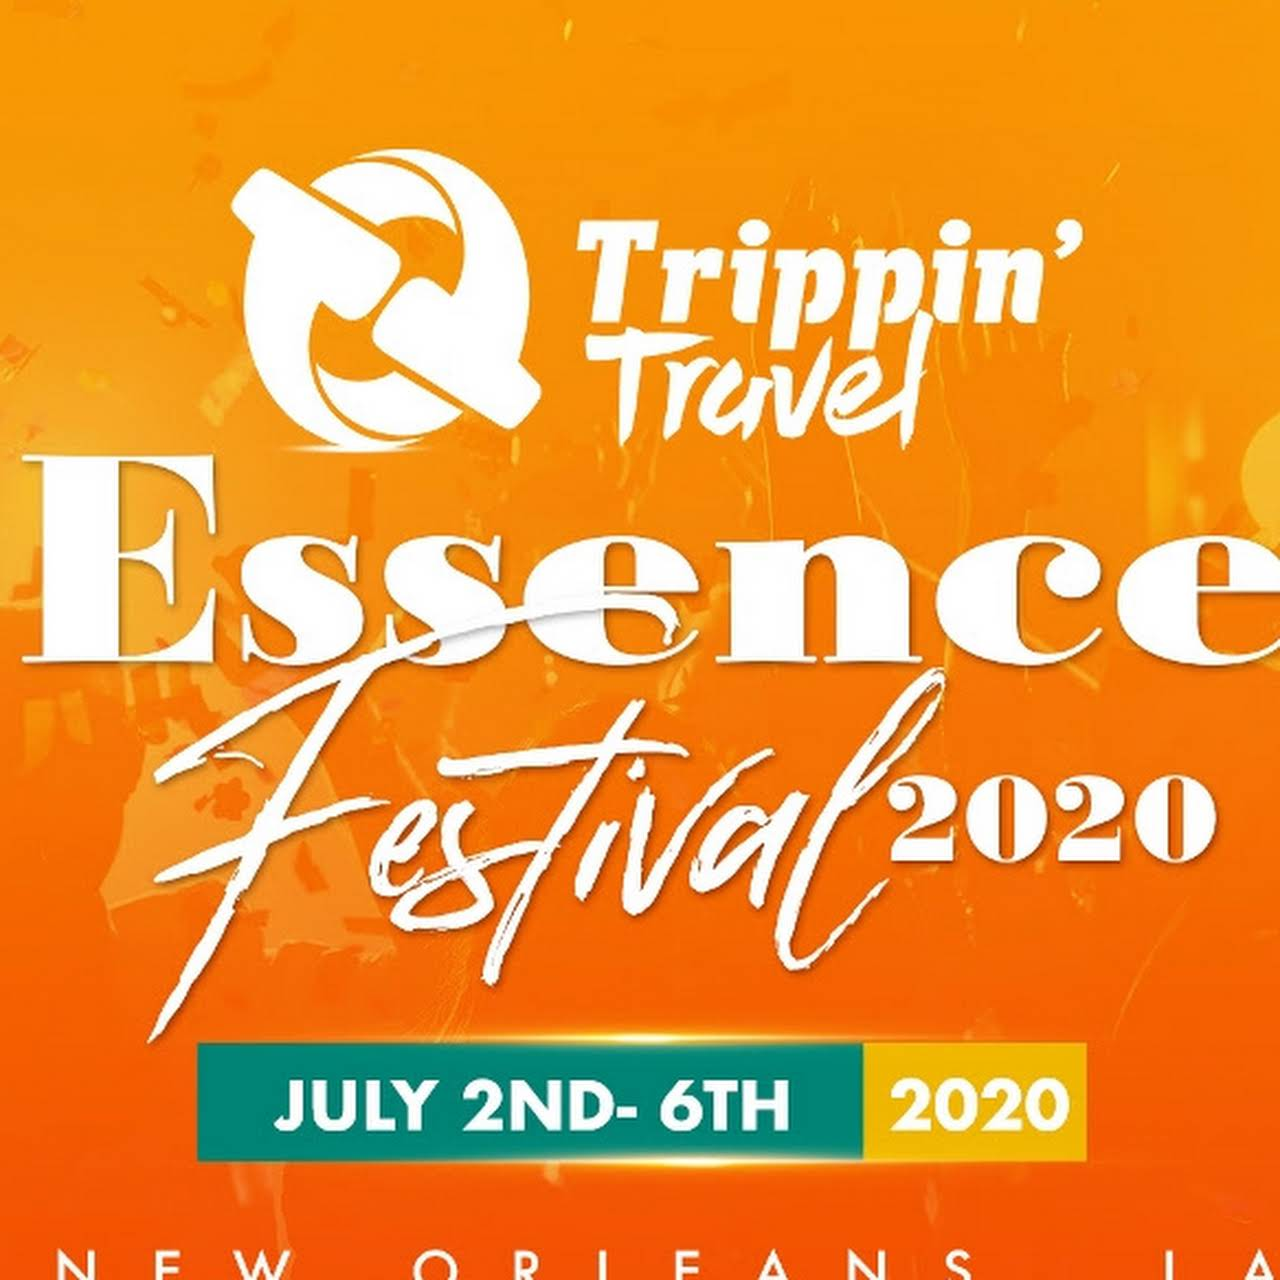 Essence Festival 2020 Packages.Trippin Travel Essence Festival 2020 Besttravels Org